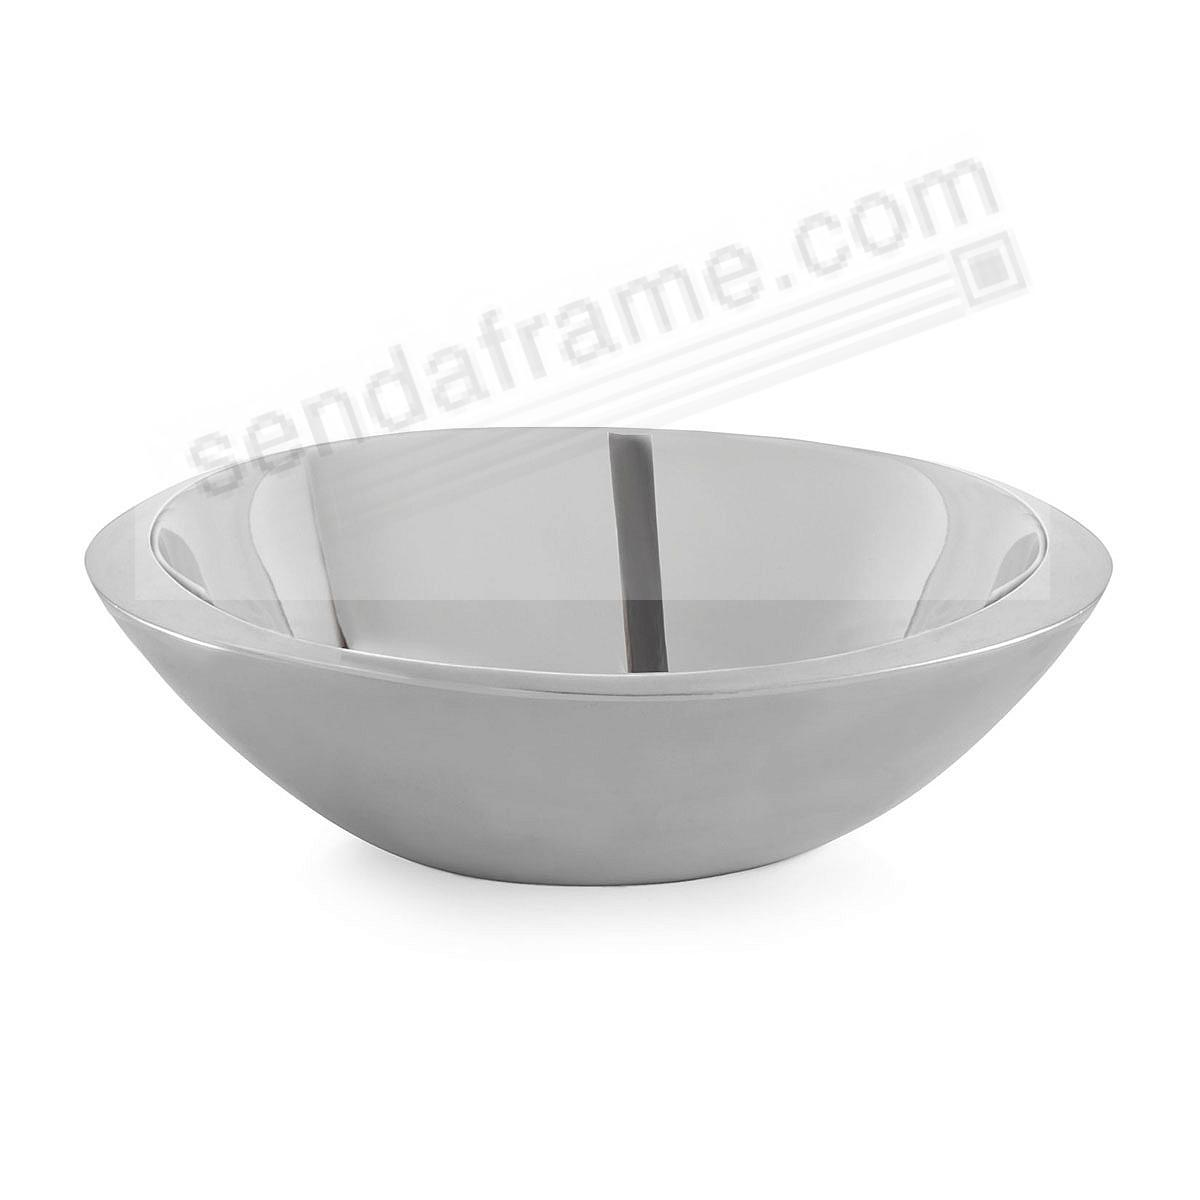 The ECLIPSE 12inch SERVING BOWL crafted by Nambe®